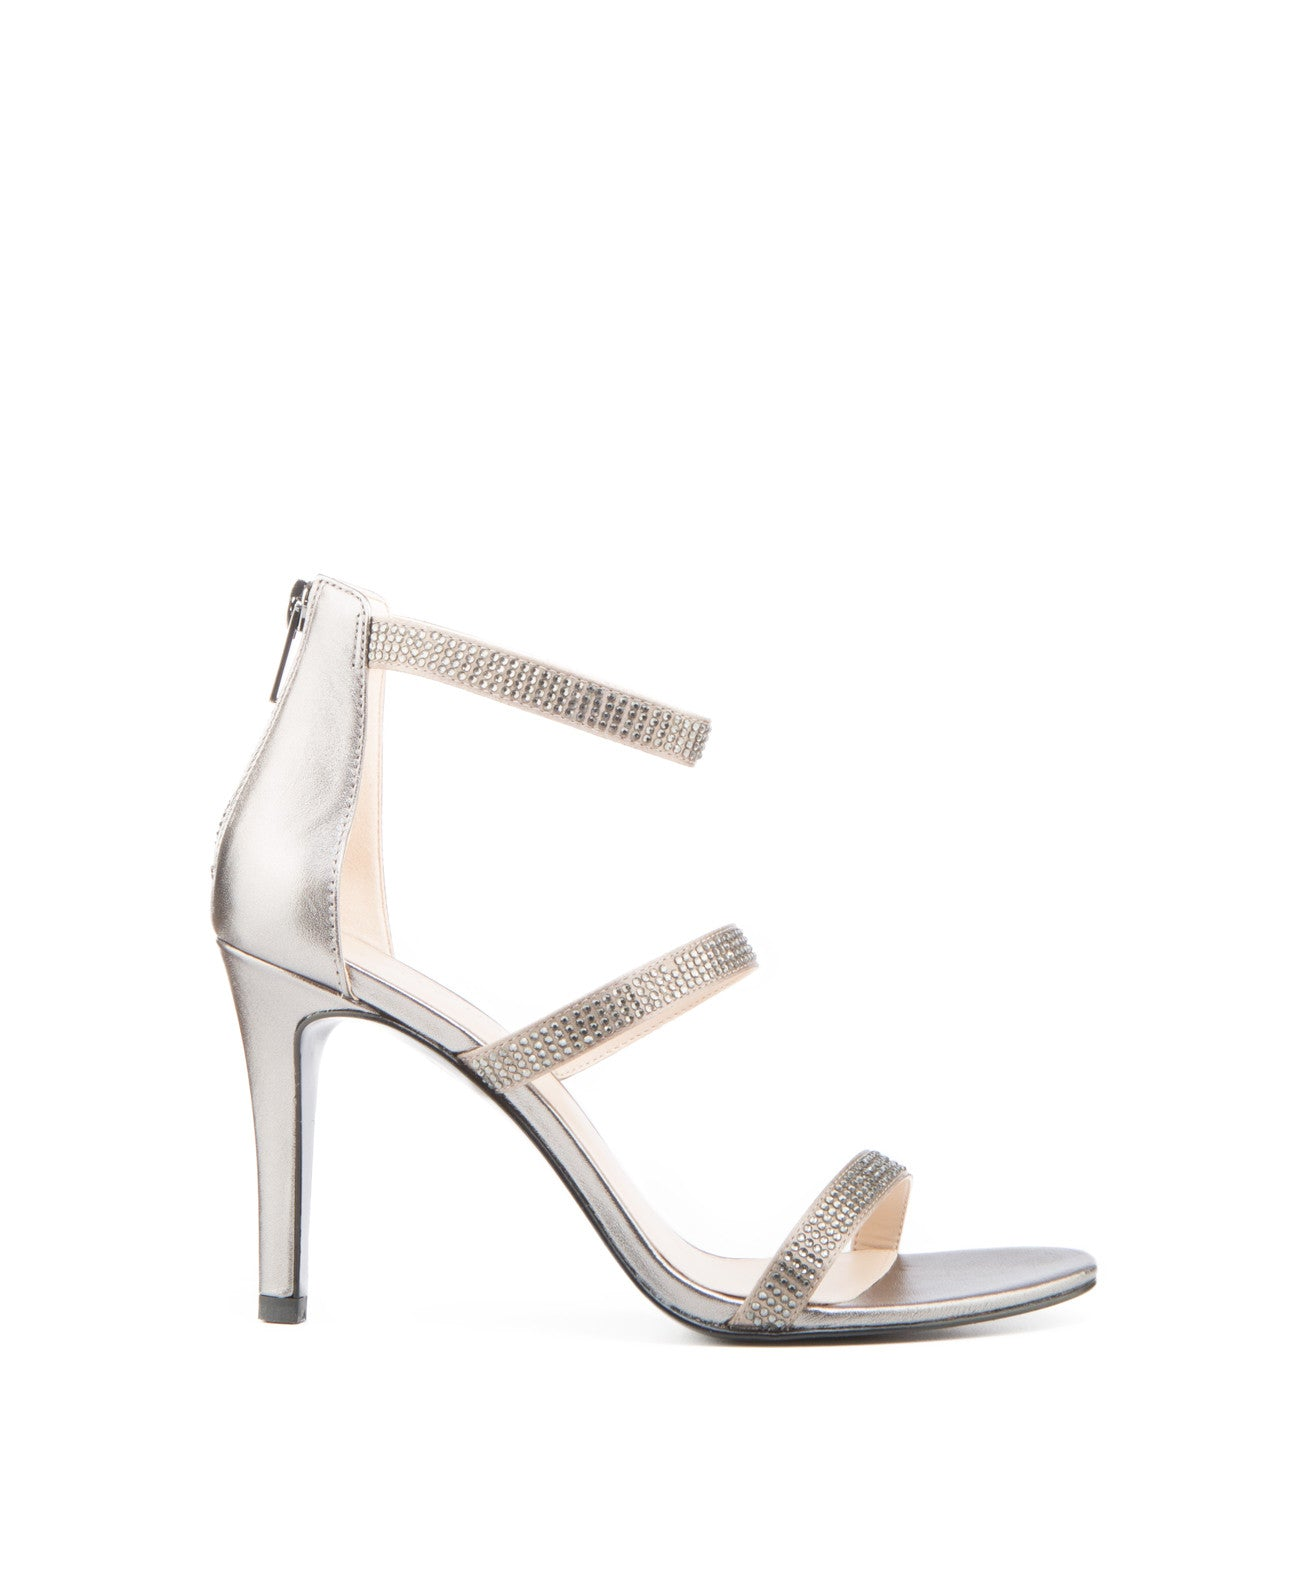 Dalia Evening High Heel Sandal - Koko & Palenki - 1